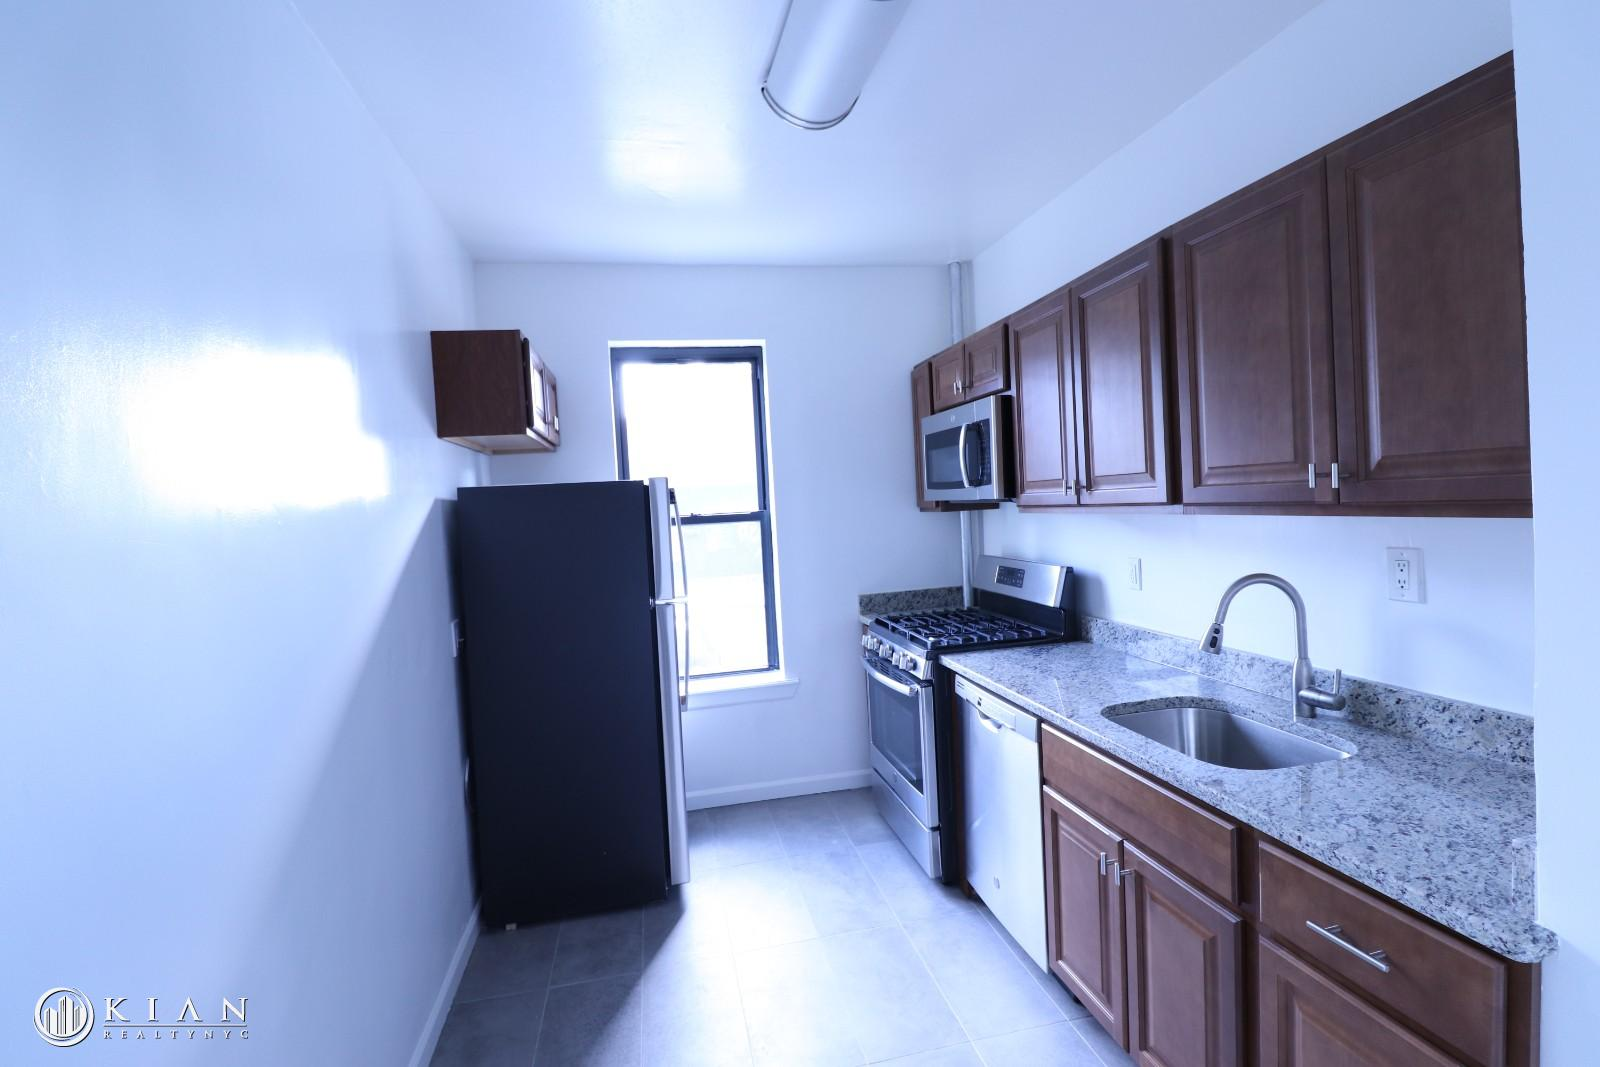 37-33 College Point Boulevard, #A-1F